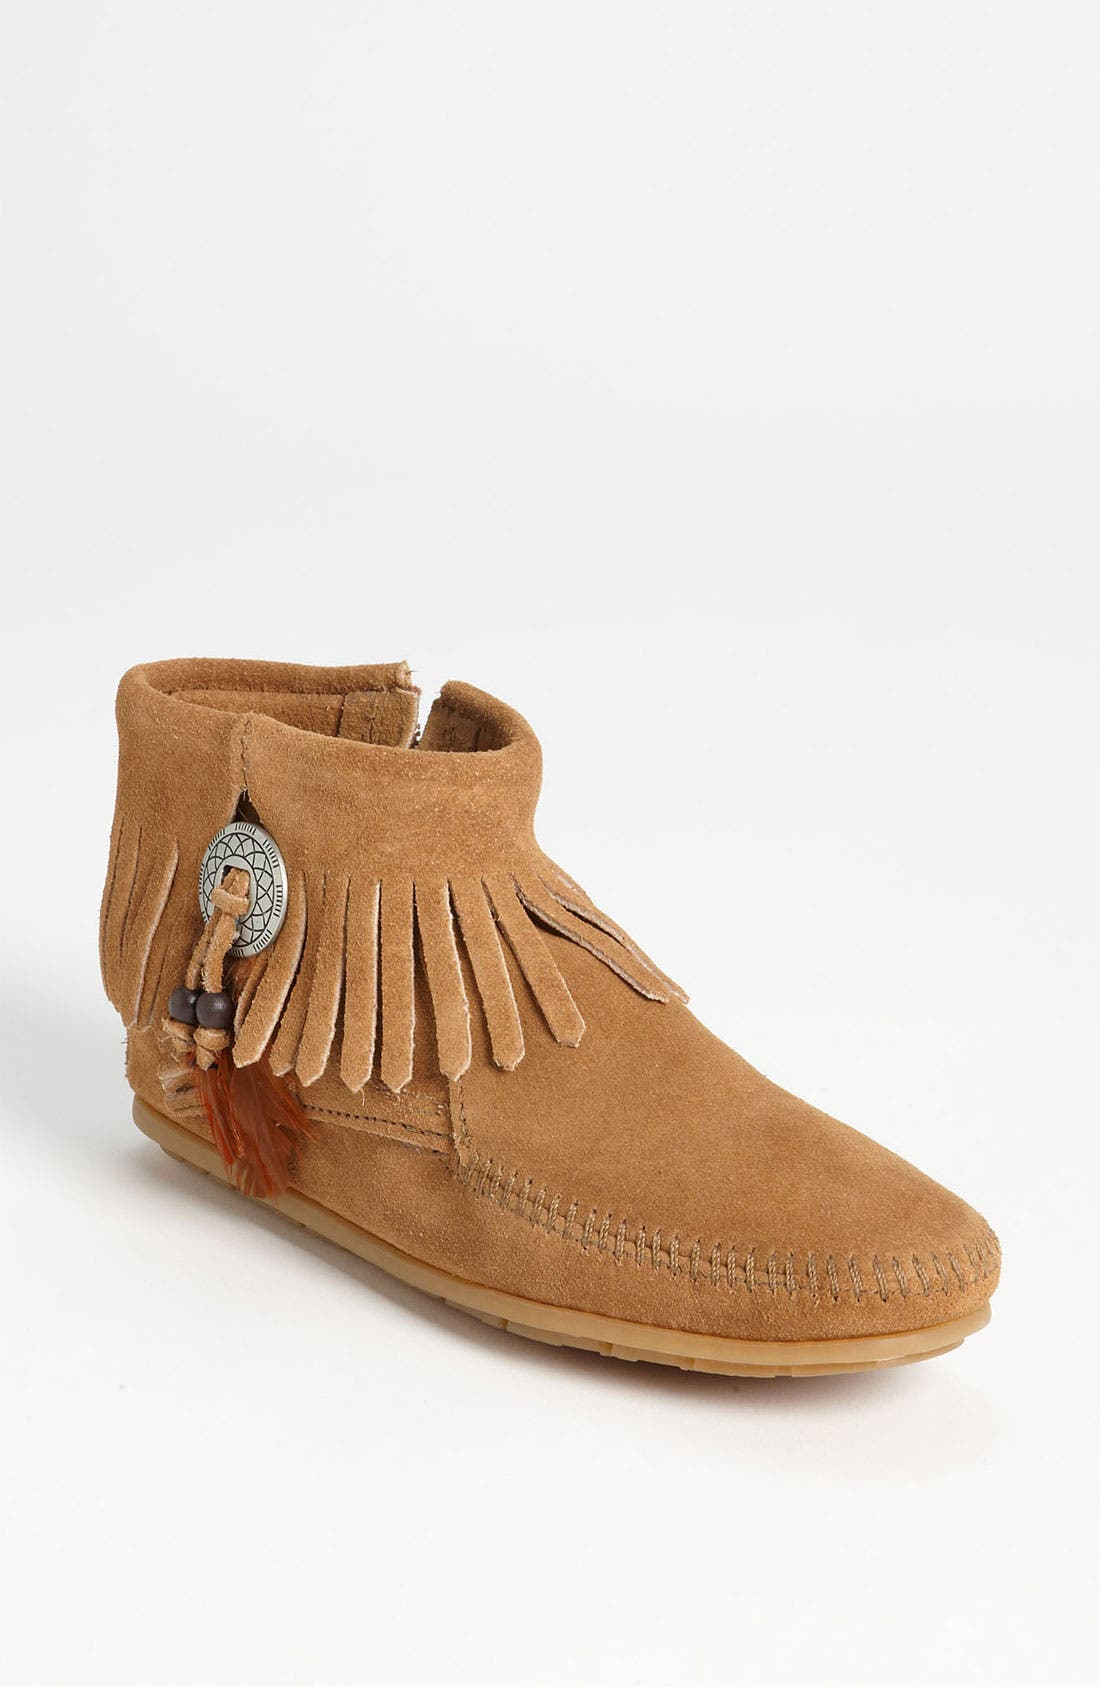 Alternate Image 1 Selected - Minnetonka 'Concho Feather' Moccasin